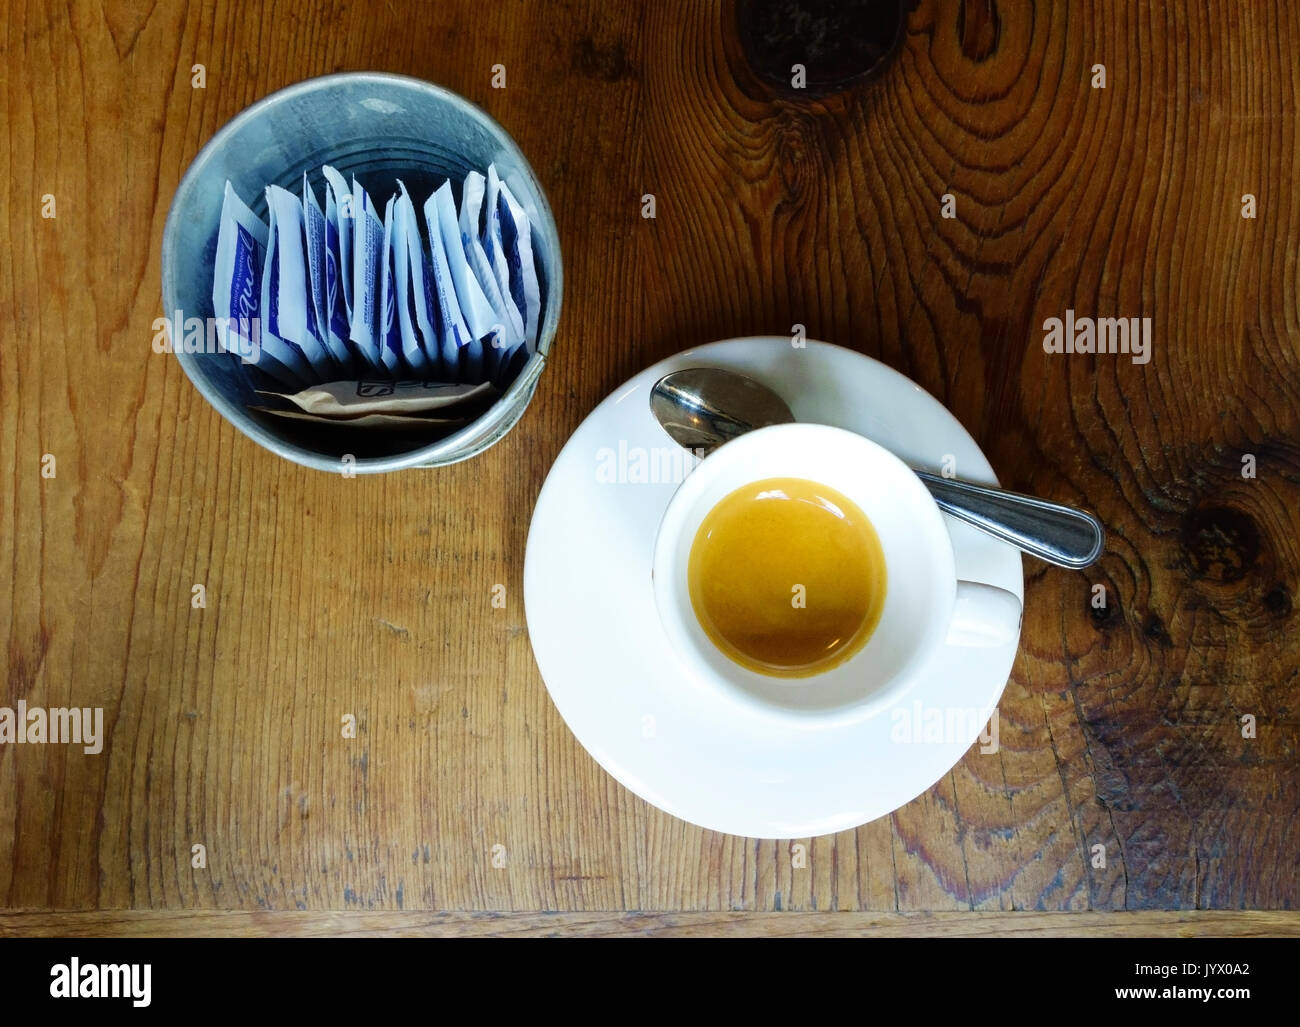 A cup of espresso next to a container holding packets of Equal, a sugar substitute, and two brown sugar packets on a wooden counter - Stock Image